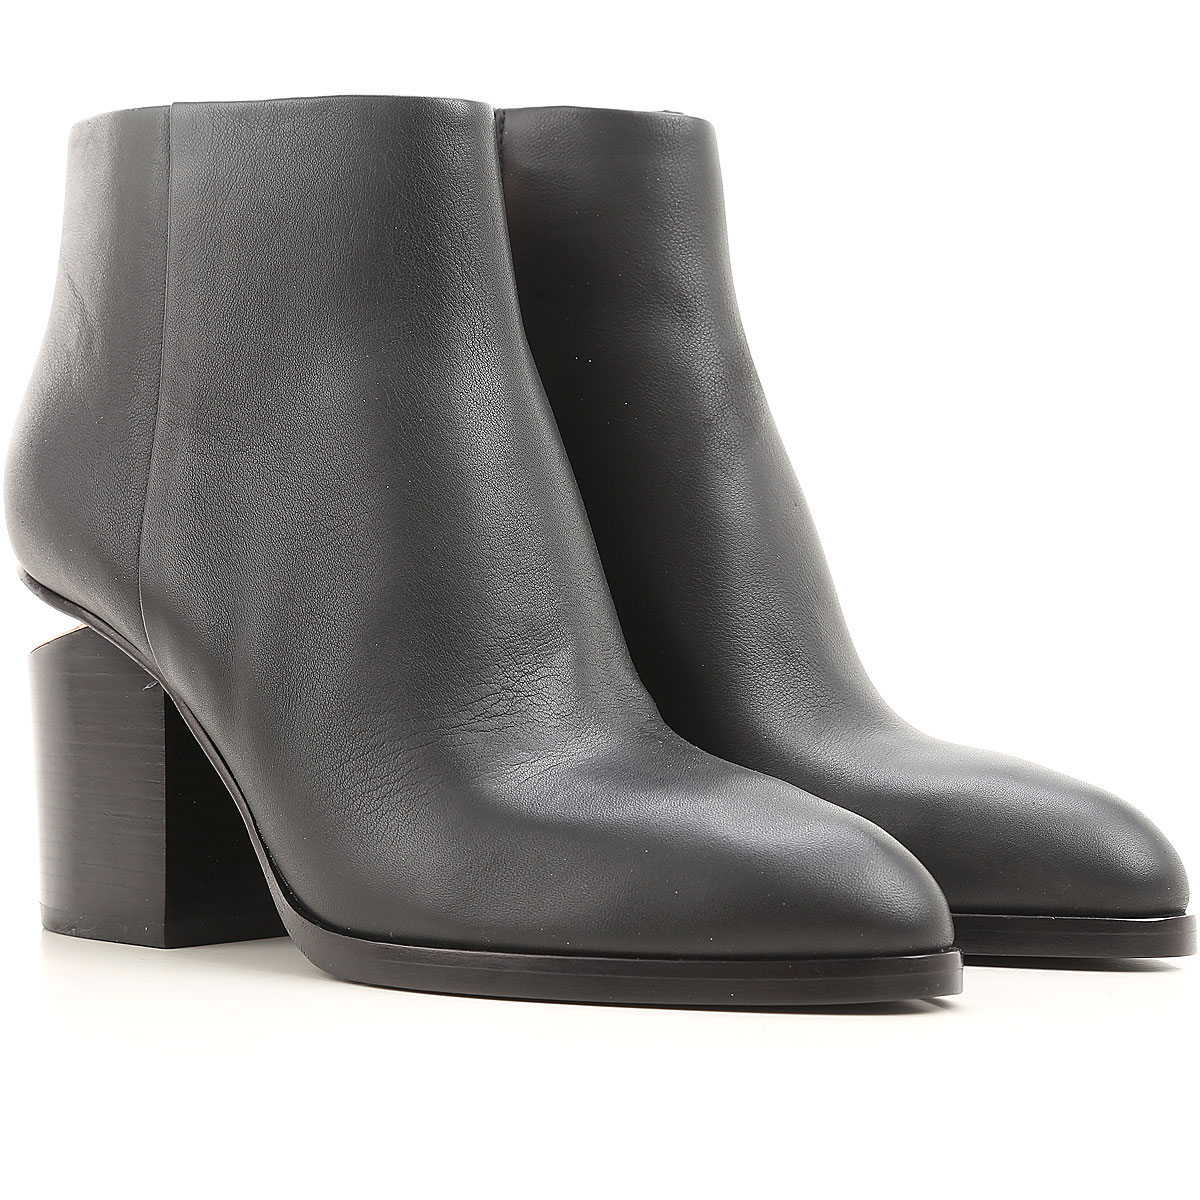 Image of Alexander Wang Boots for Women, Booties, Black, Leather, 2017, 10 5 5.5 6 6.5 7 8 8.5 9